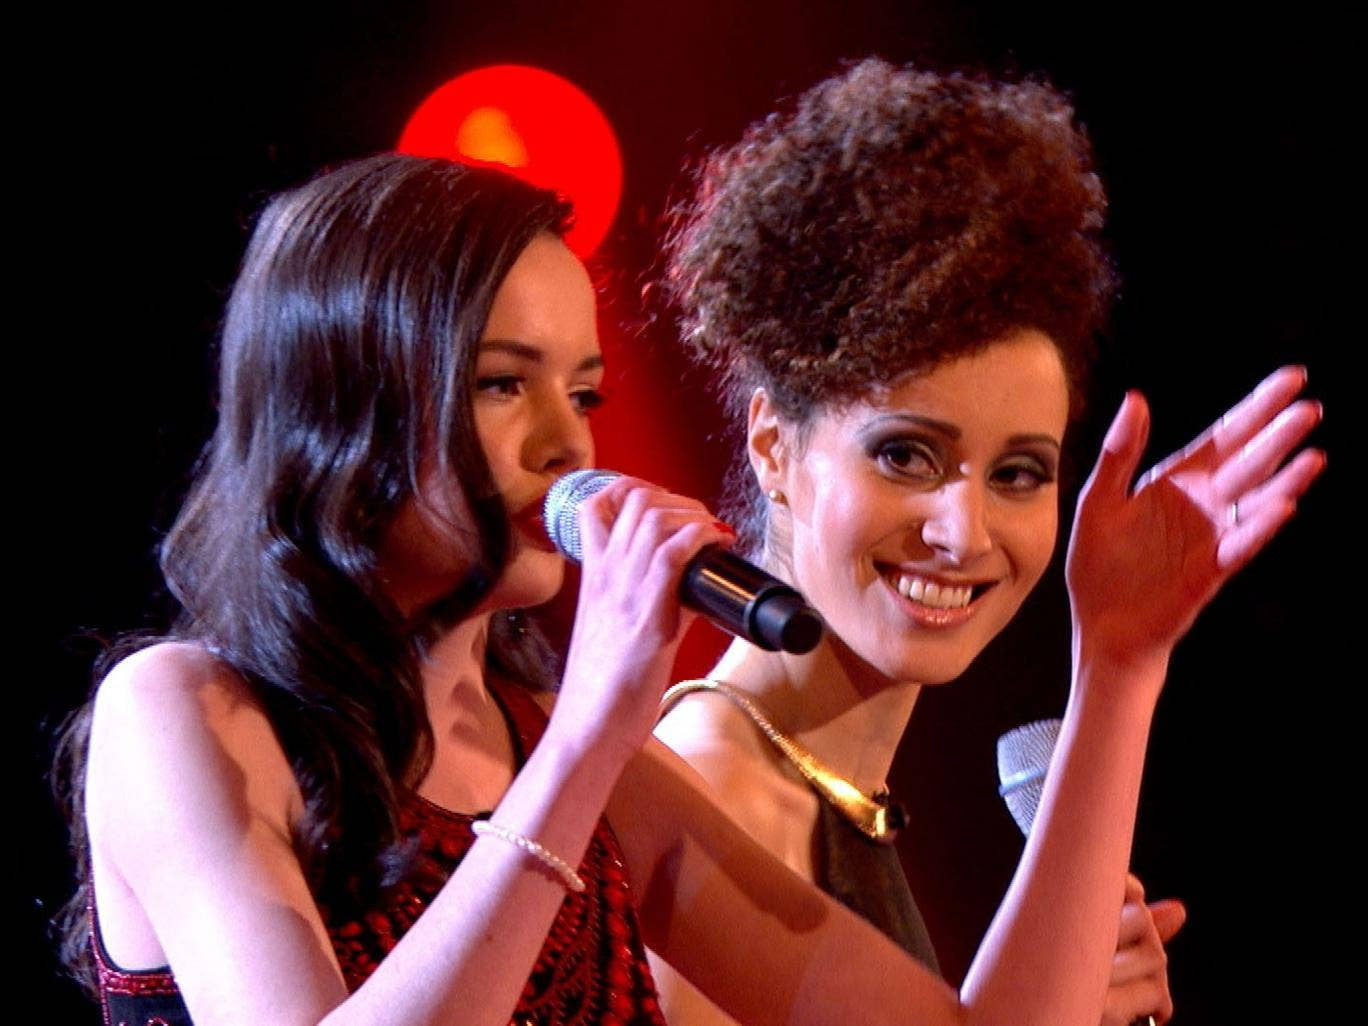 Dynamic duo: Sophie May Williams and Cherri Prince do battle on 'The Voice'